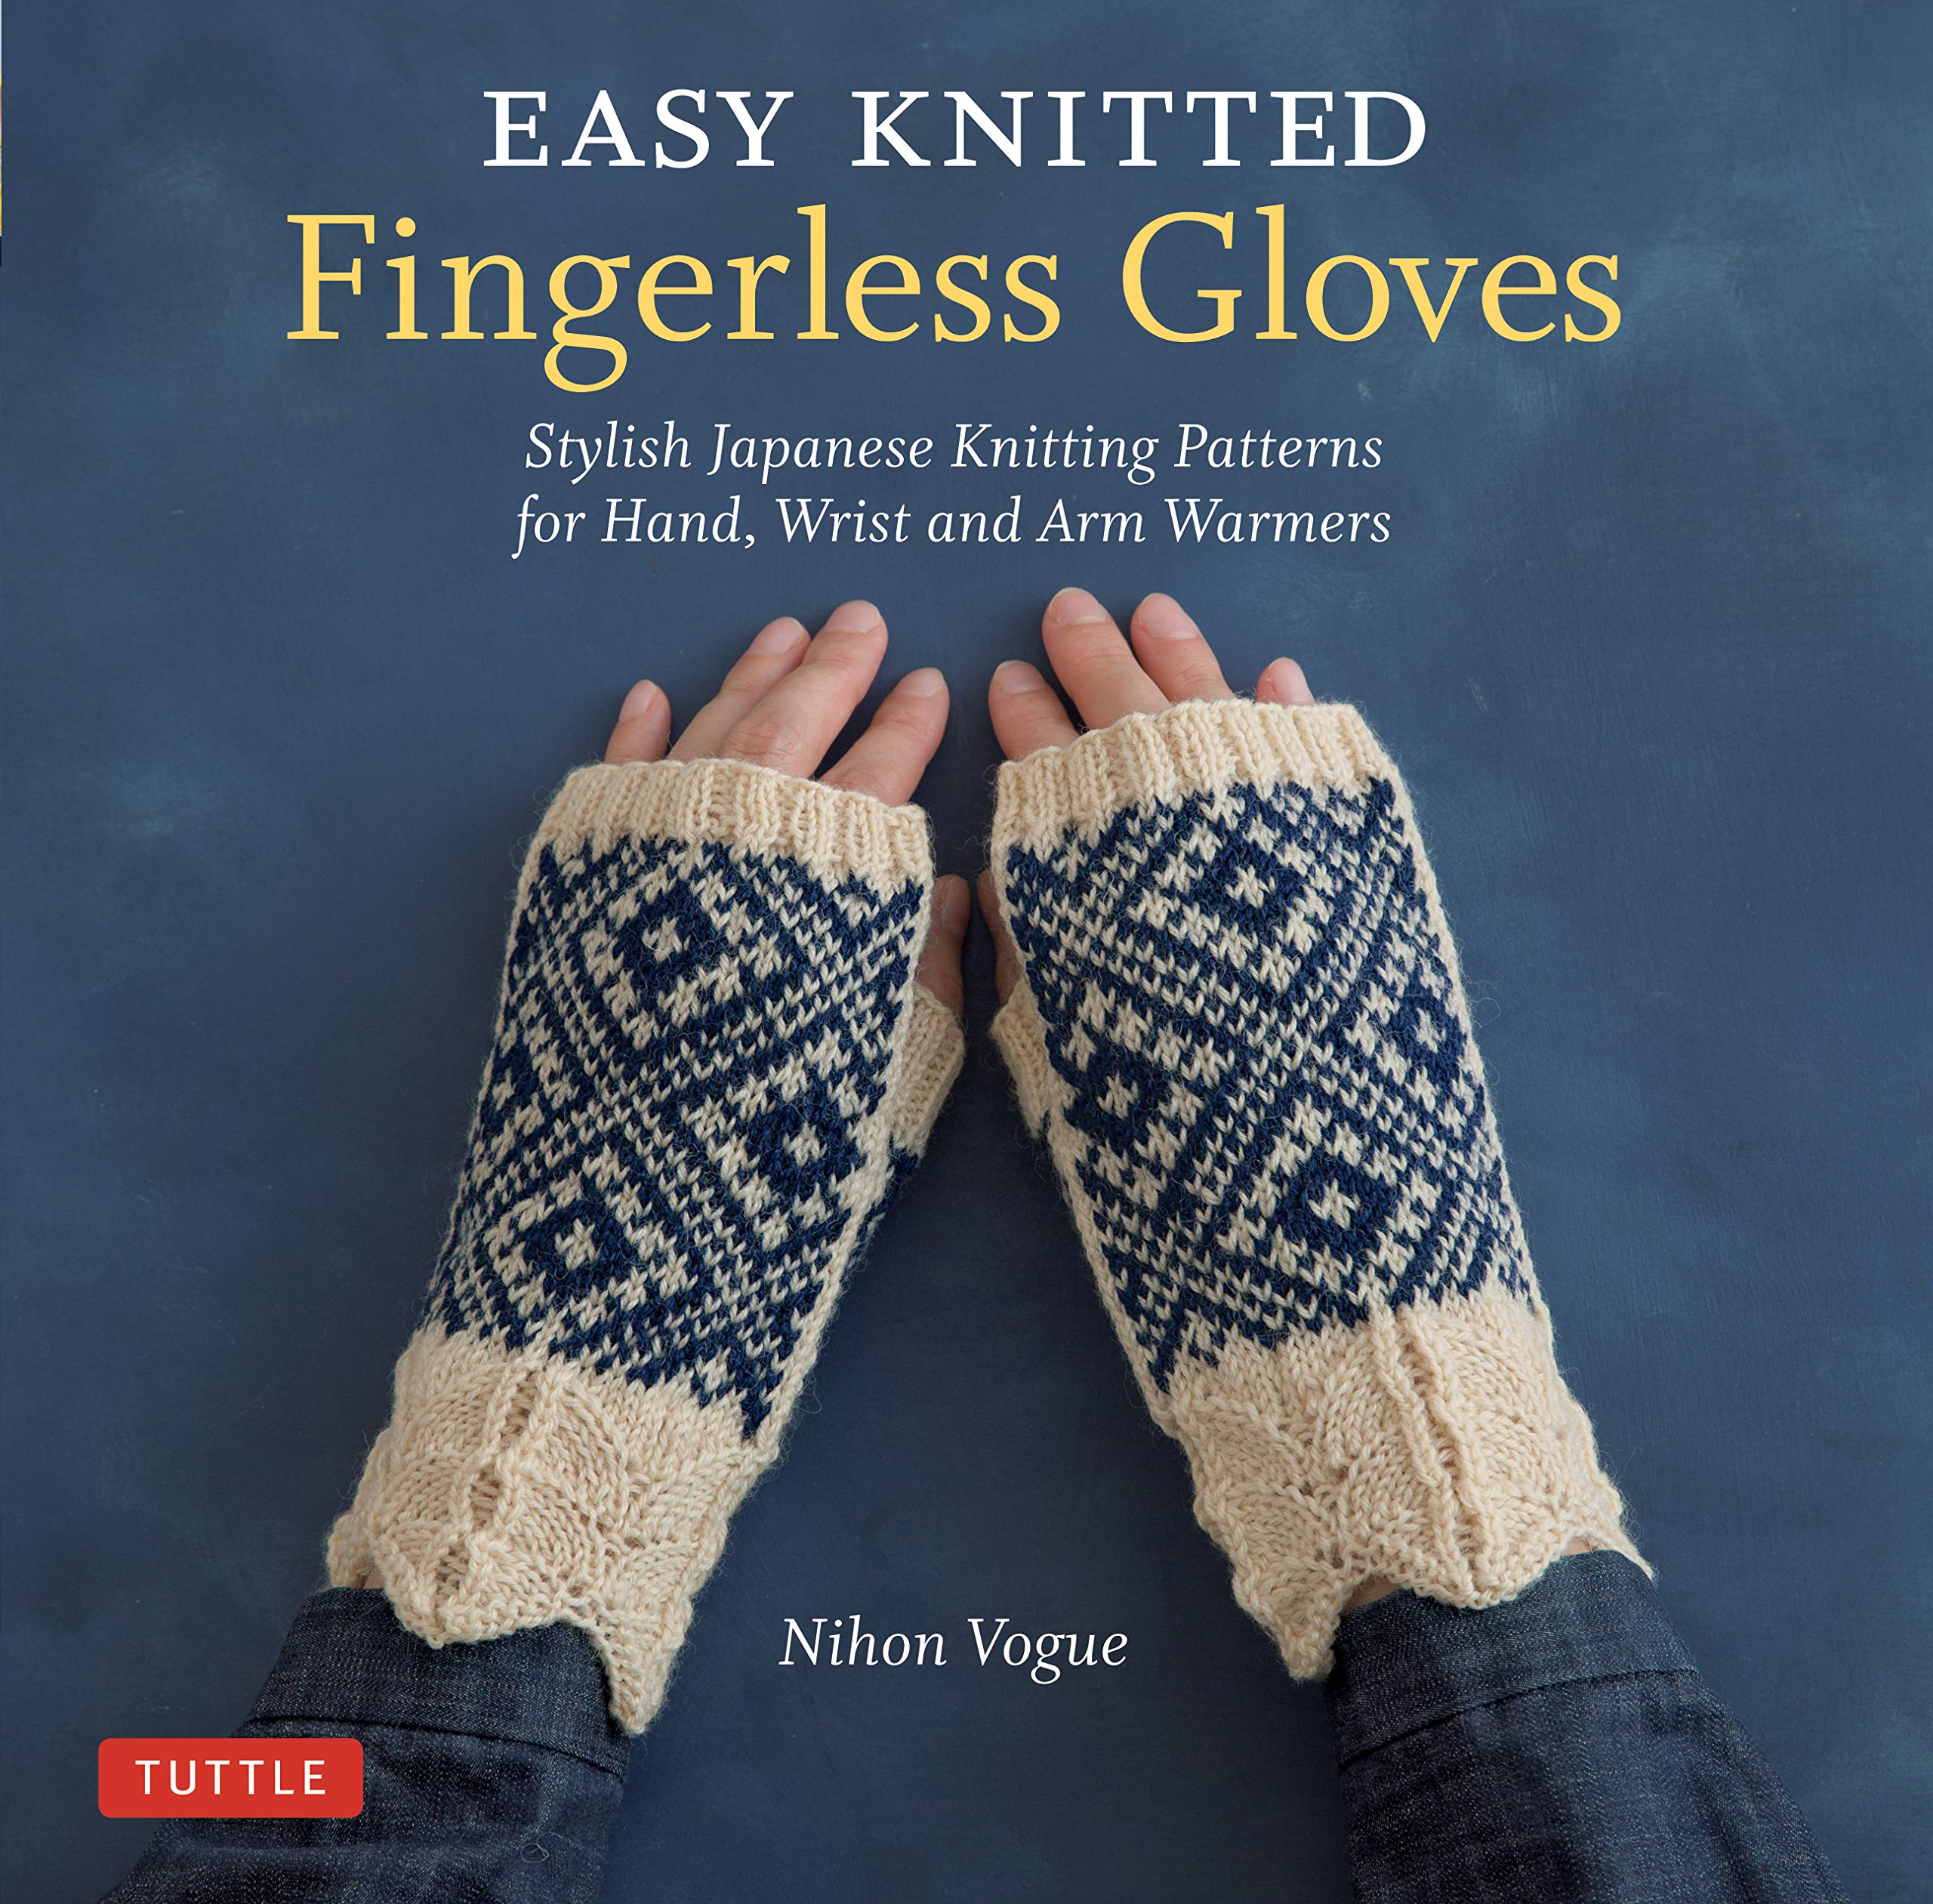 : Easy Knitted Fingerless Gloves: Stylish Japanese